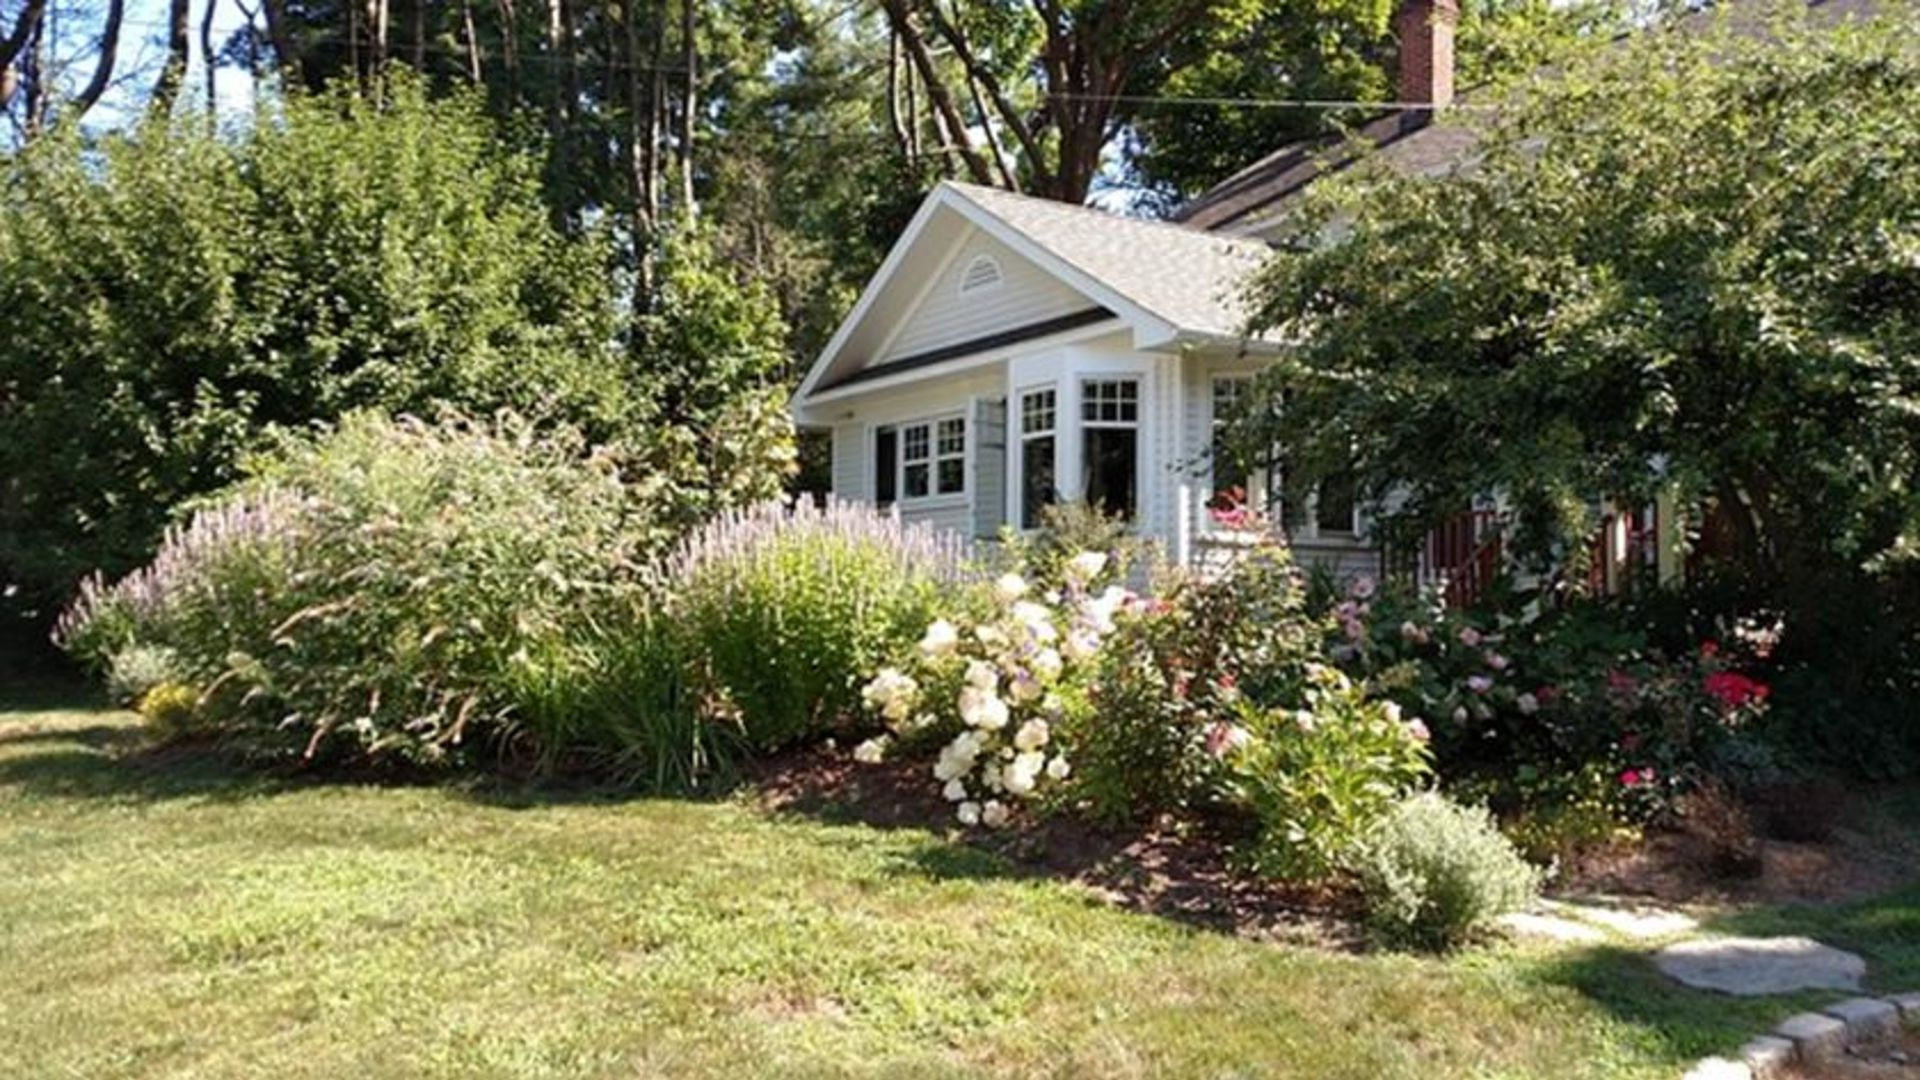 Paying Attention to Your Home's Curb Appeal on a Shoestring Budget